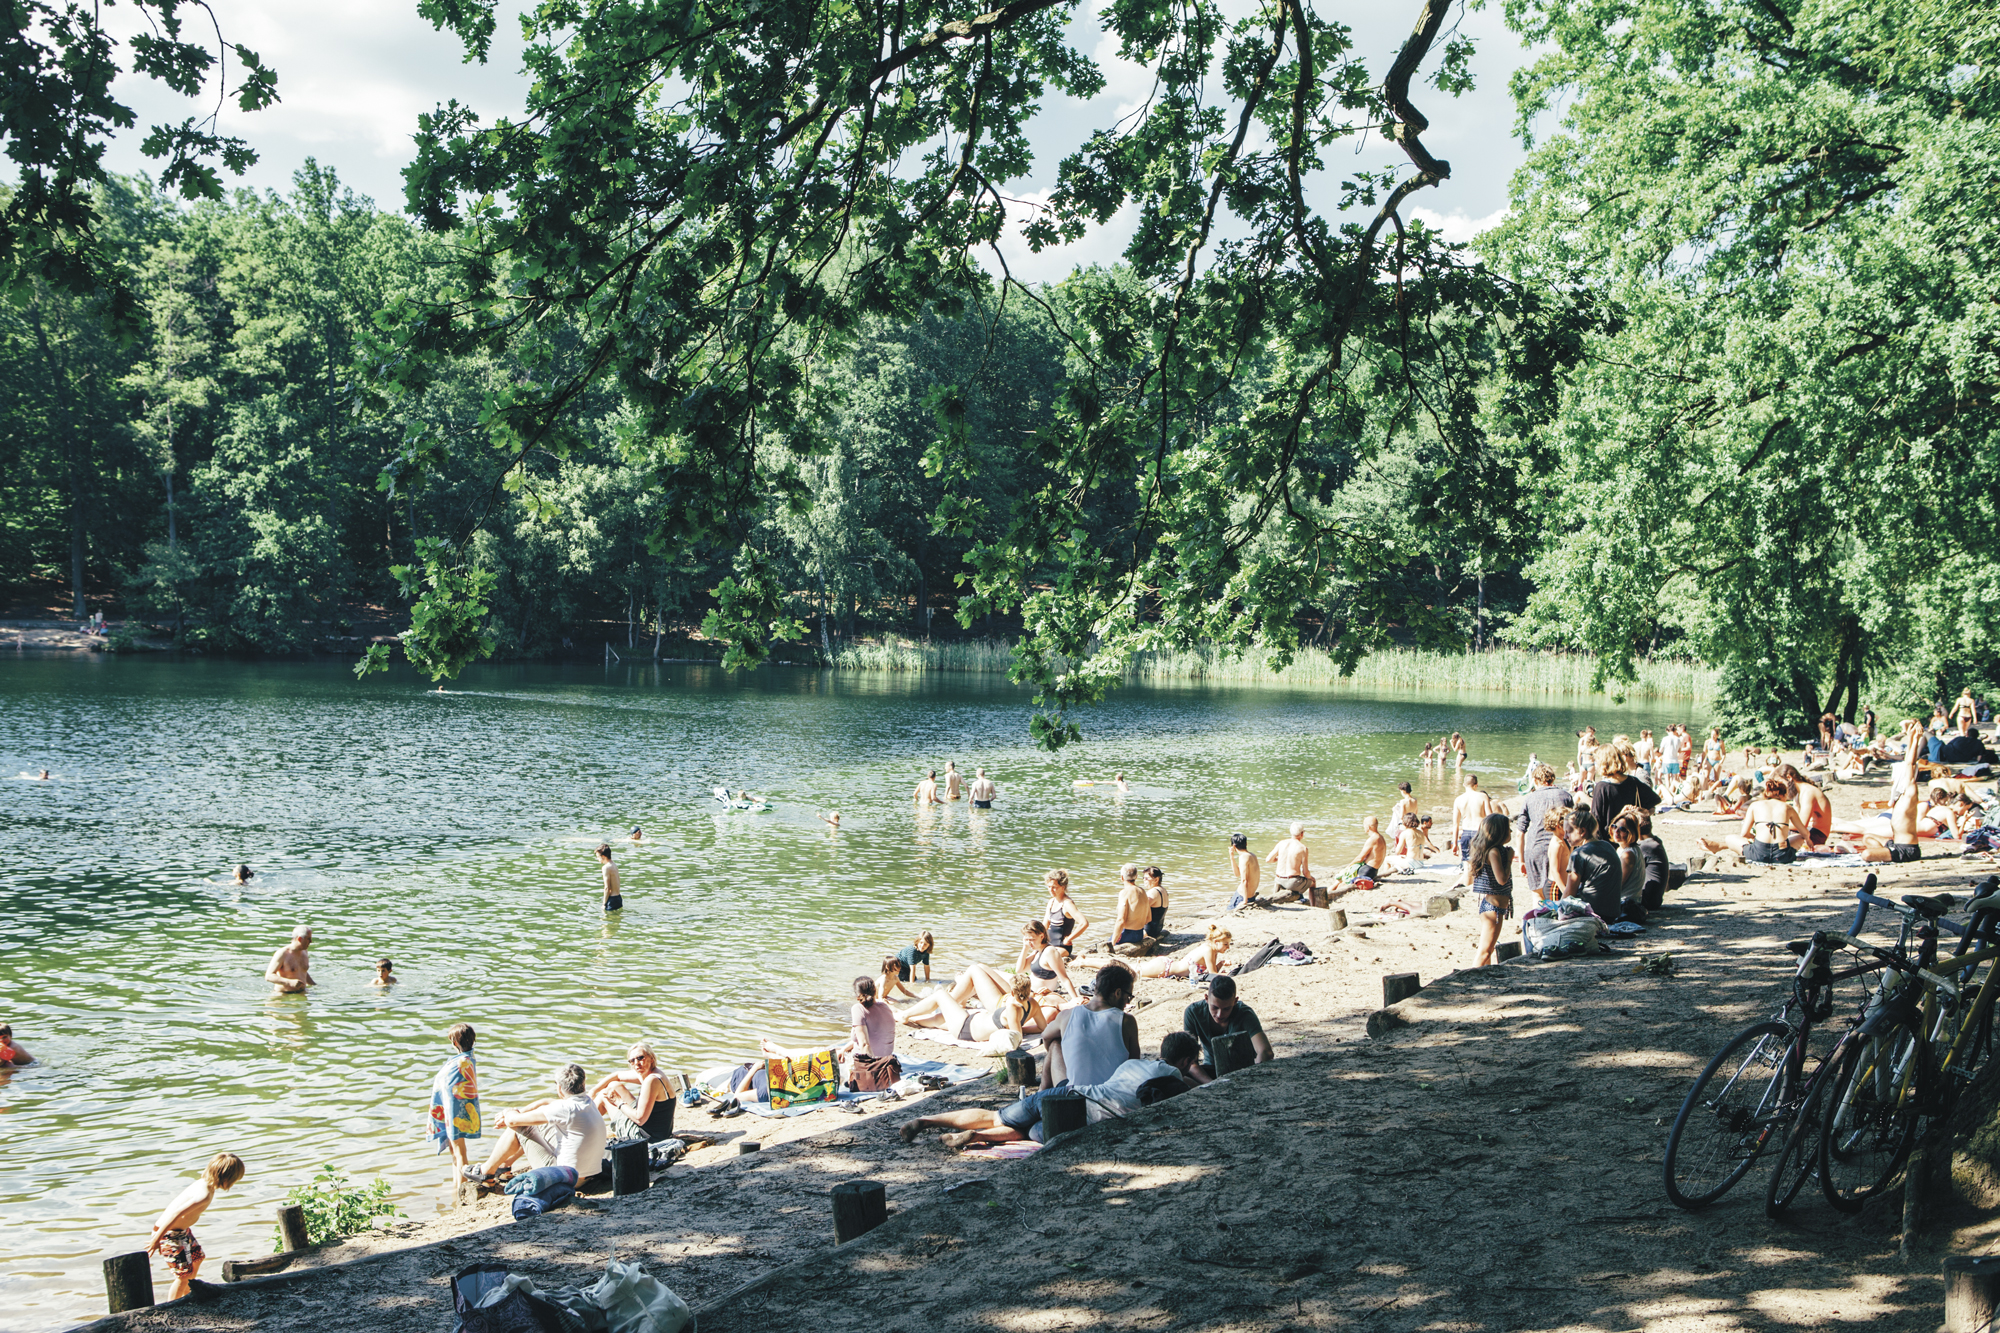 Take Me to the Lakes – Publication of Berlin's Natural Beauty